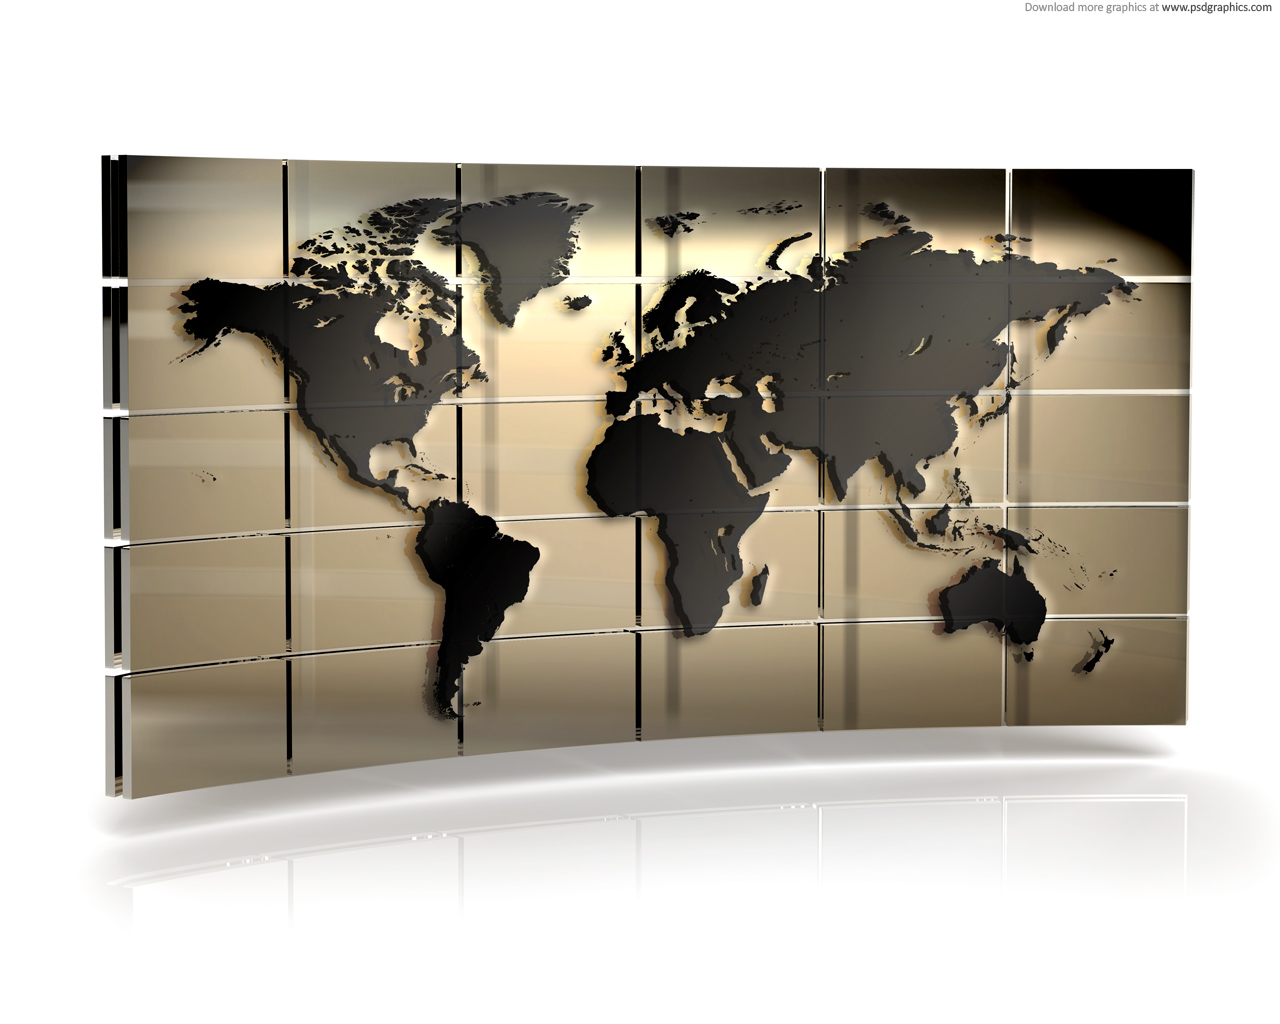 World map wall | PSDGraphics